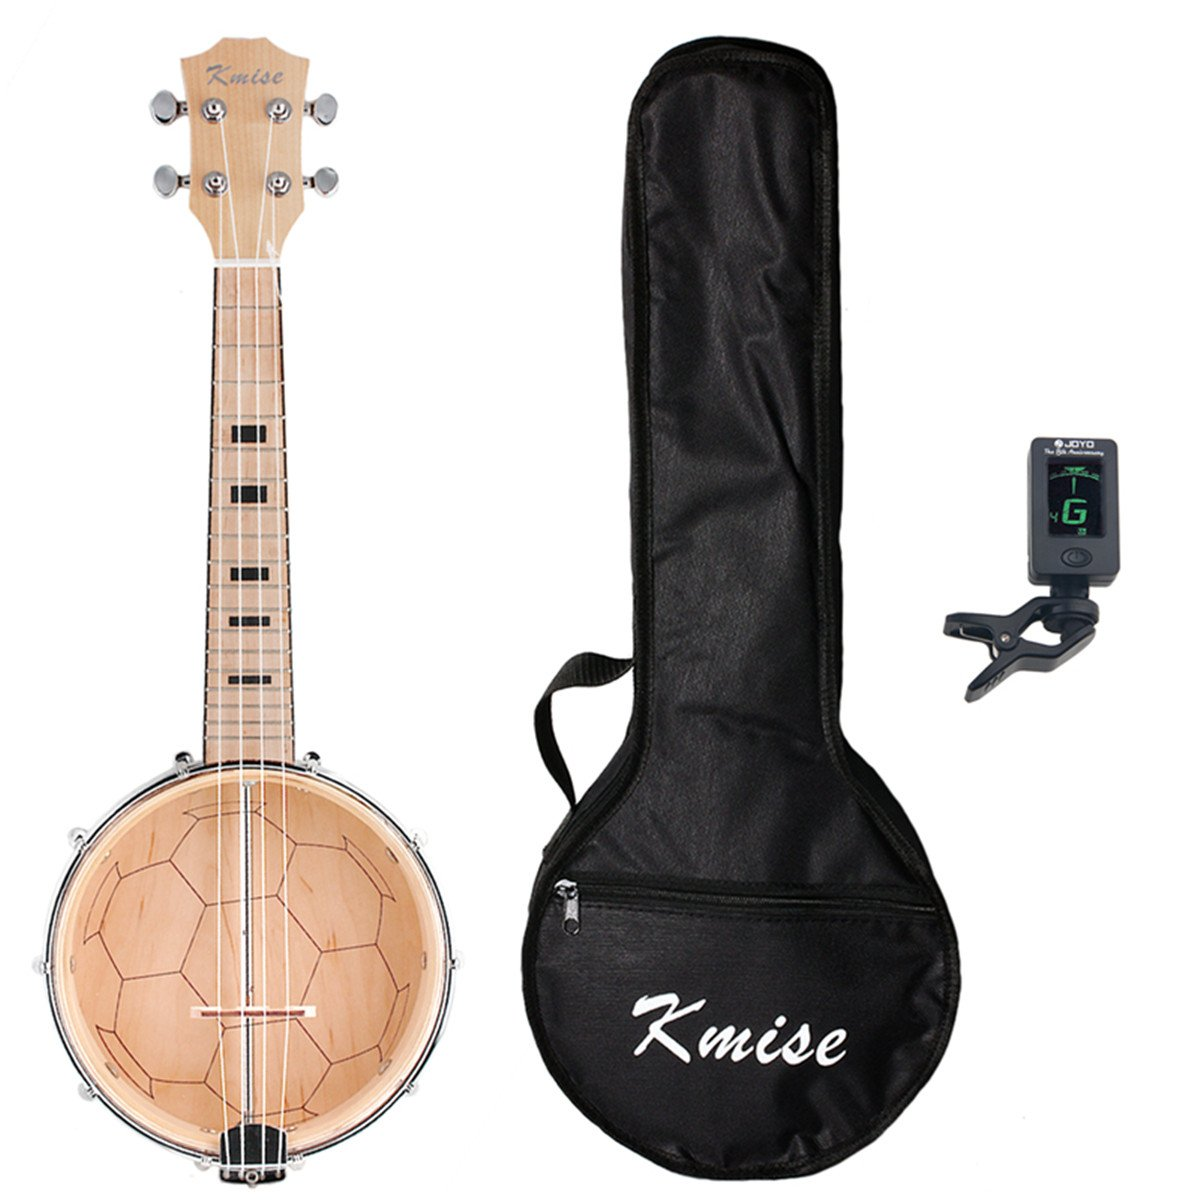 Kmise Banjolele Banjo Ukulele Ukelele Uke With Bag Tuner Concert 4 String 23 Inch Maple Wood Ltd